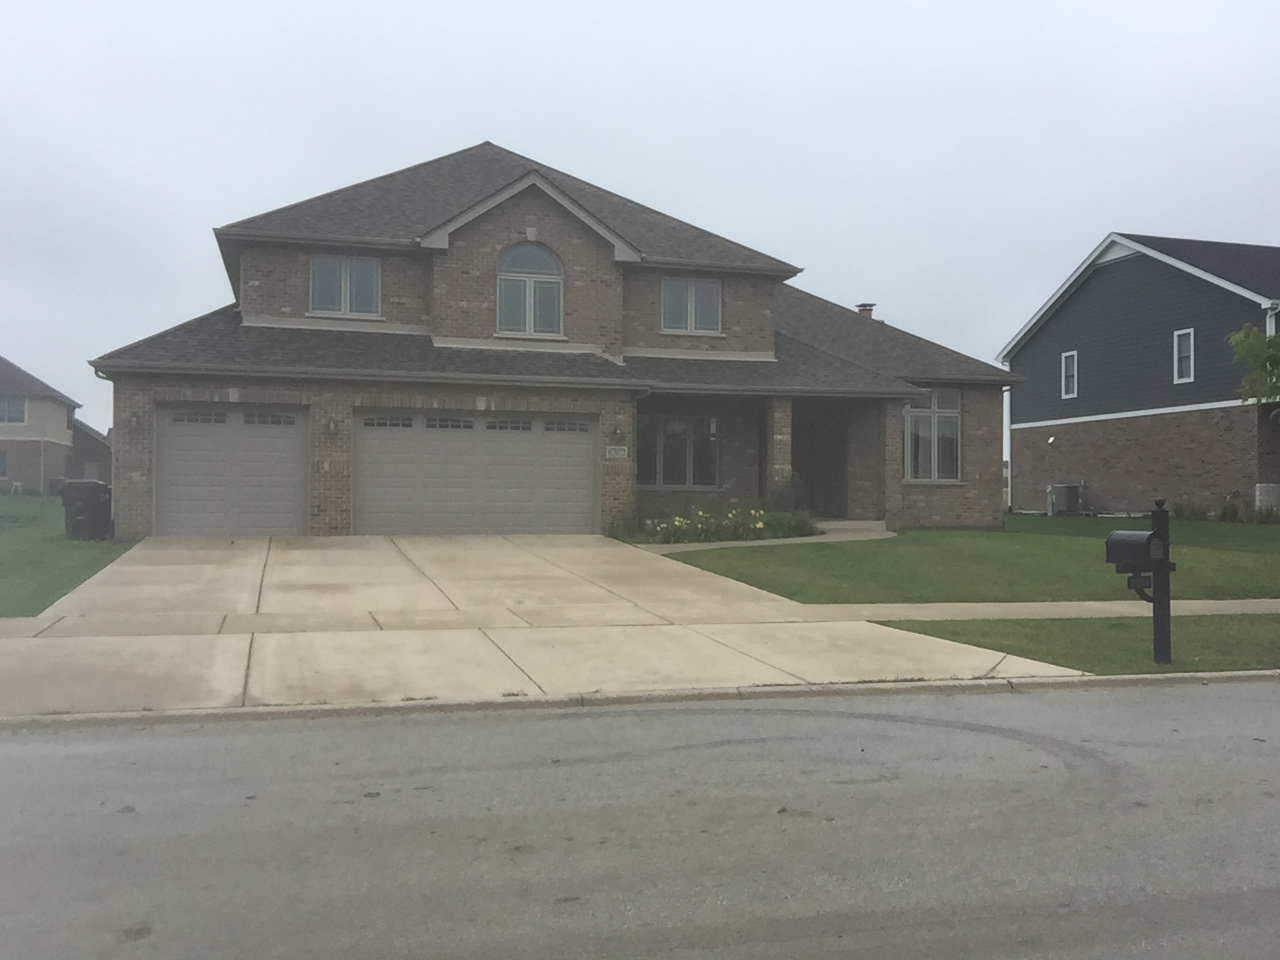 House for Rent in Mokena